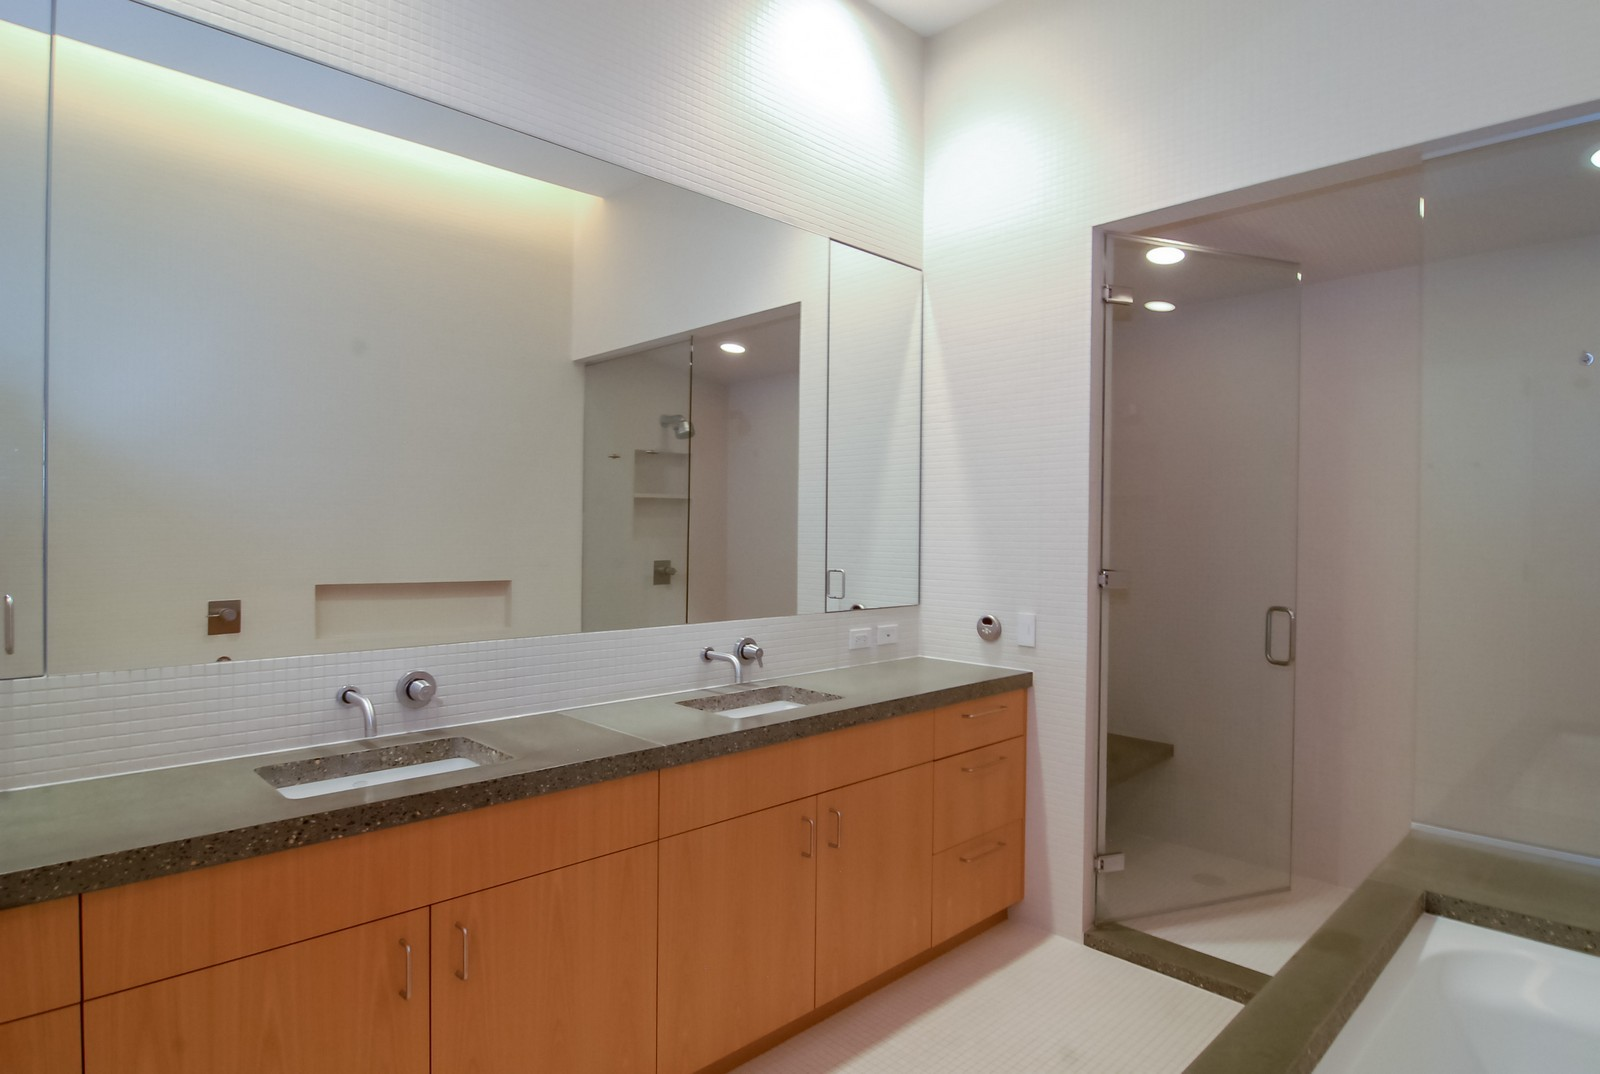 Real Estate Photography - 900 N Kingsbury St, Unit 950, Chicago, IL, 60654 - Master Bathroom